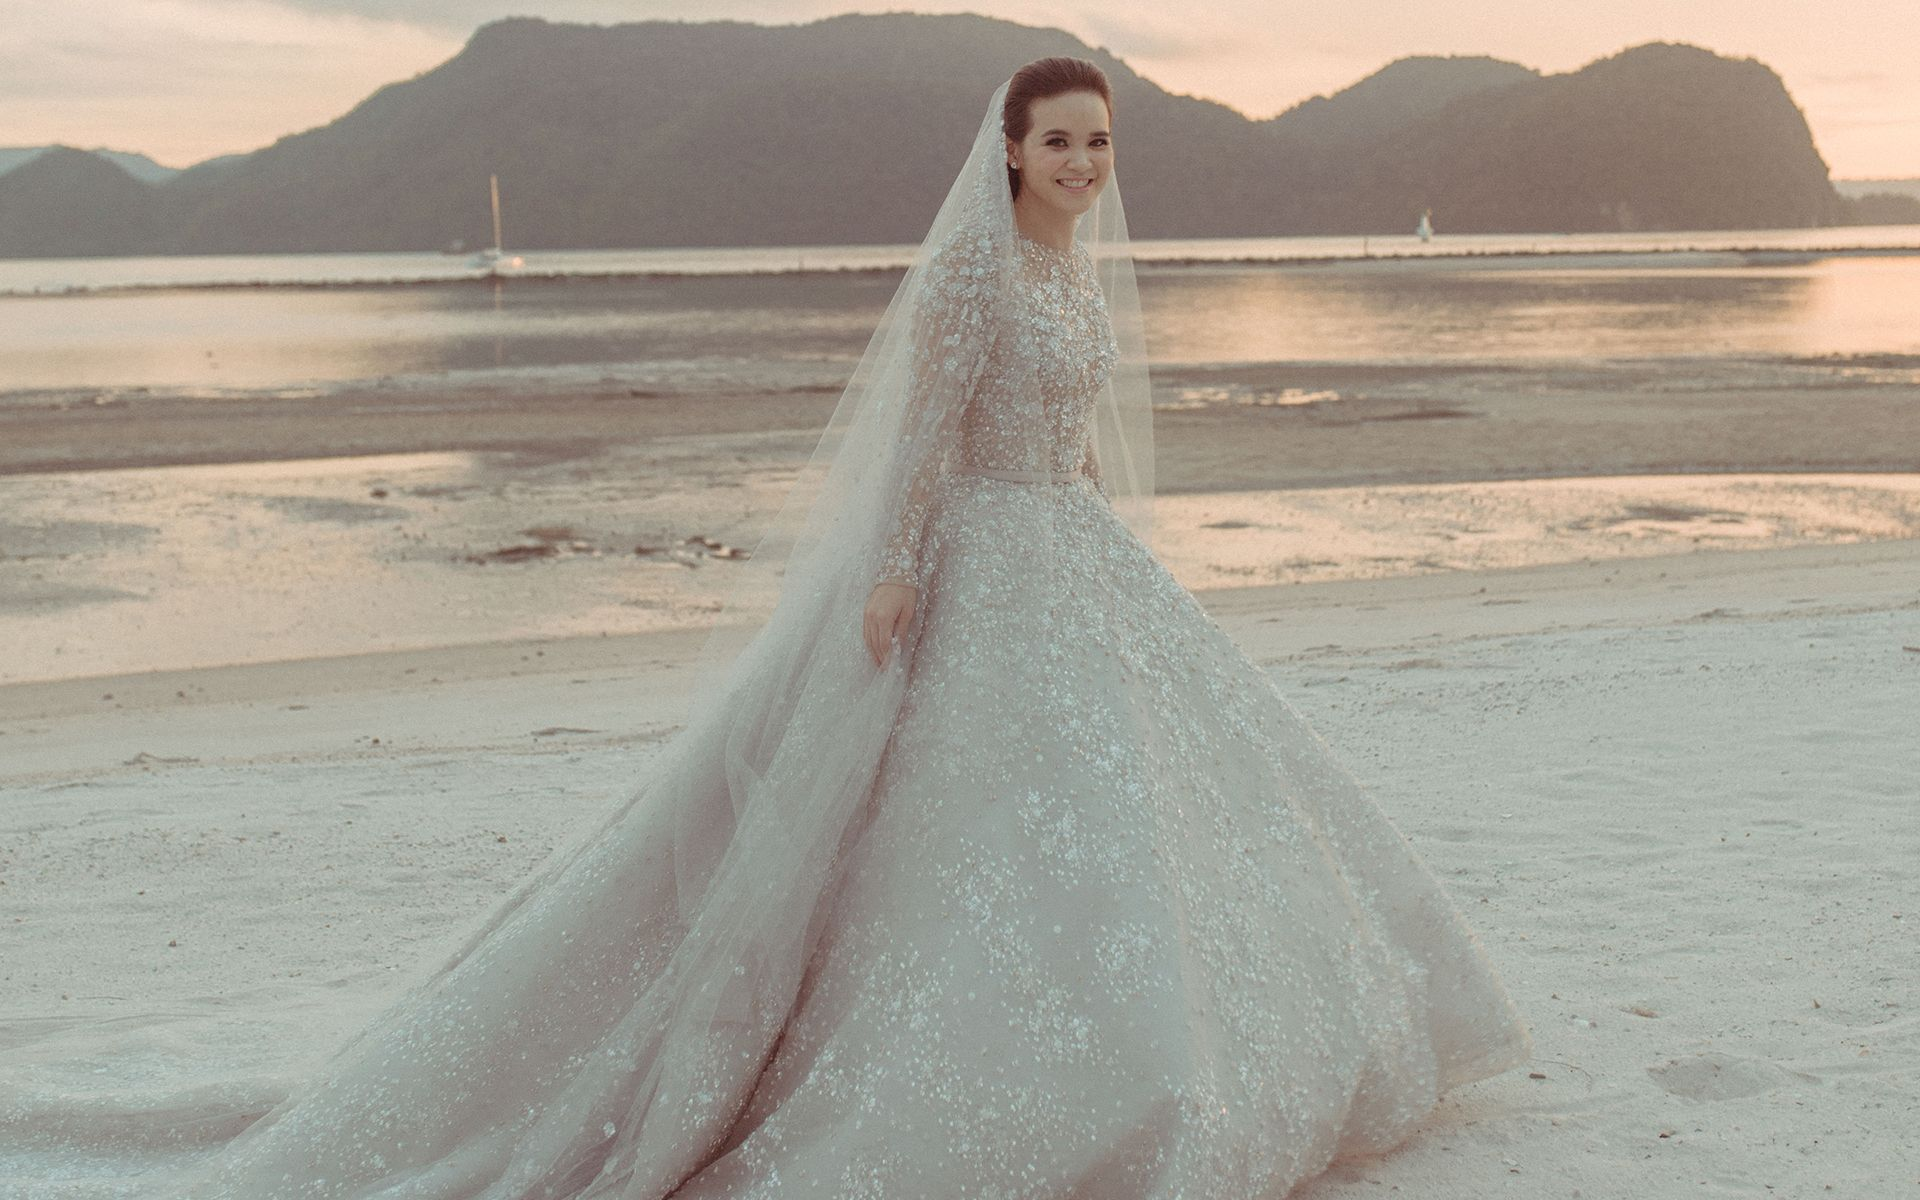 Enchanting Bride Melissa Sin Unveils The Magical Dresses & Details Of Her Big Day